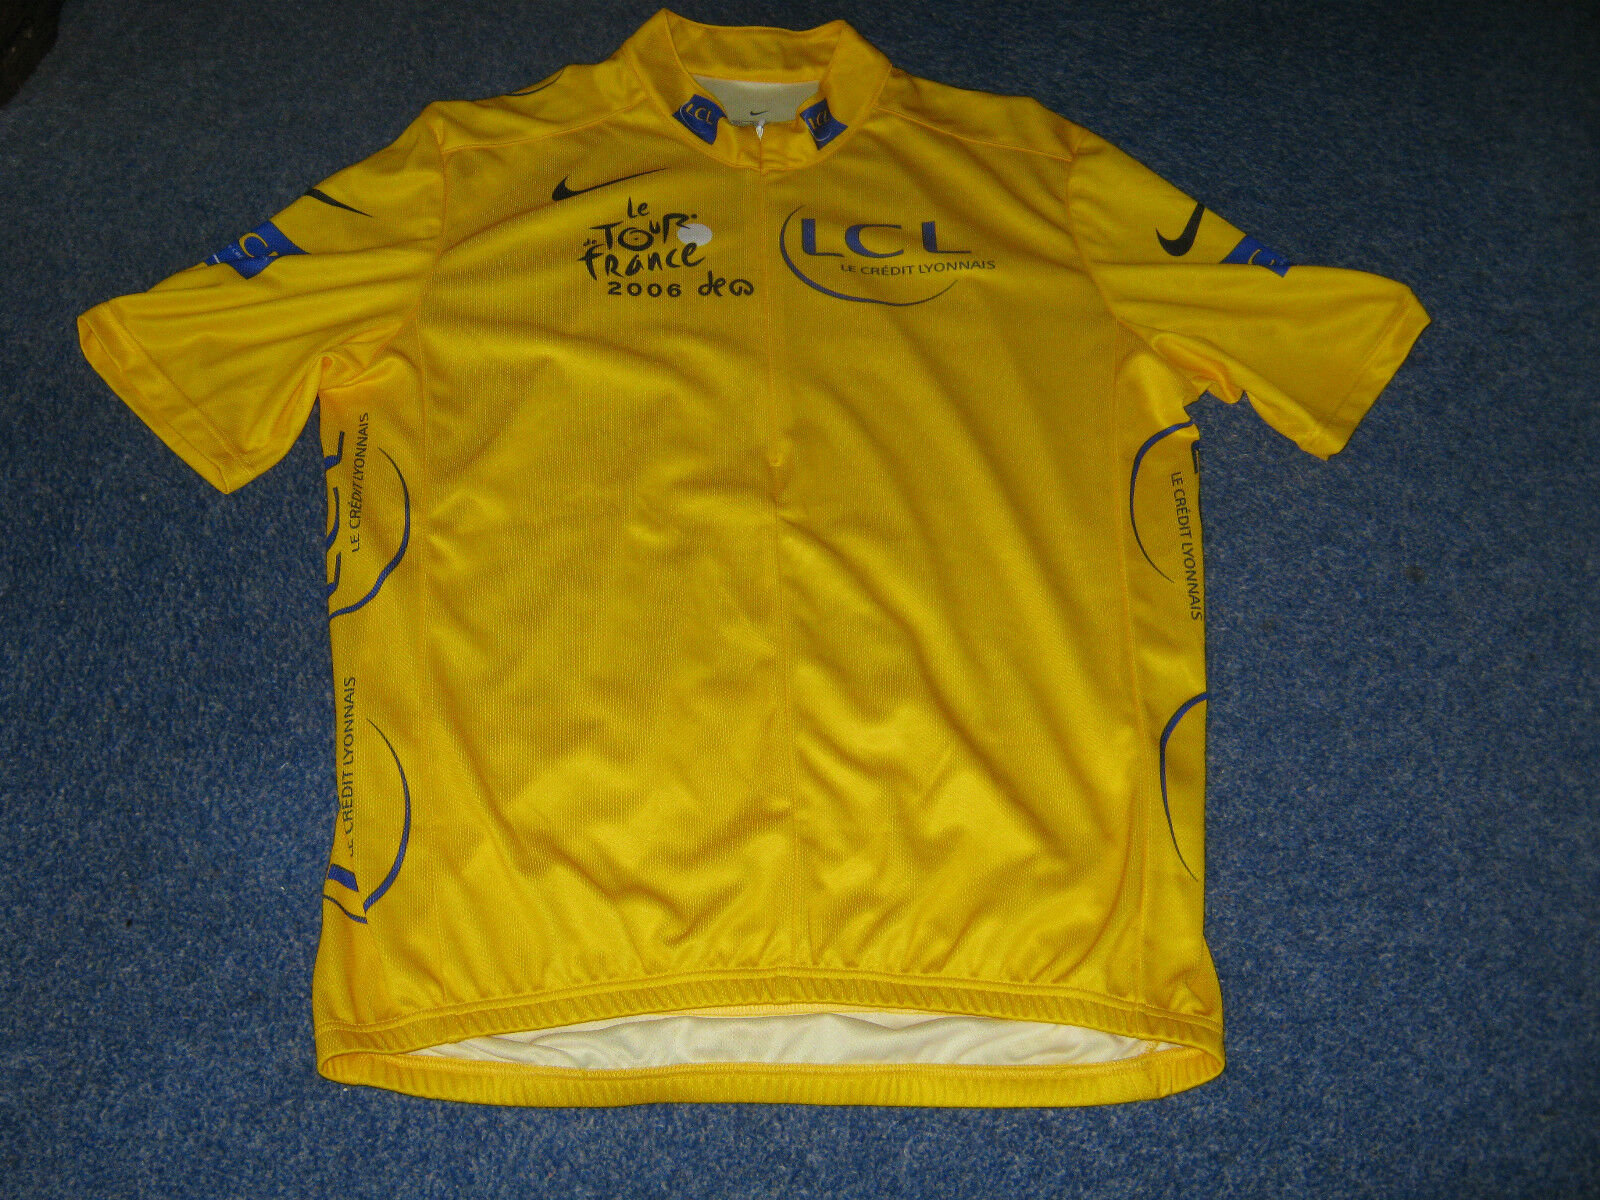 TOUR DE FRANCE 2006 NIKE YELLOW LEADERS CYCLING JERSEY [L]